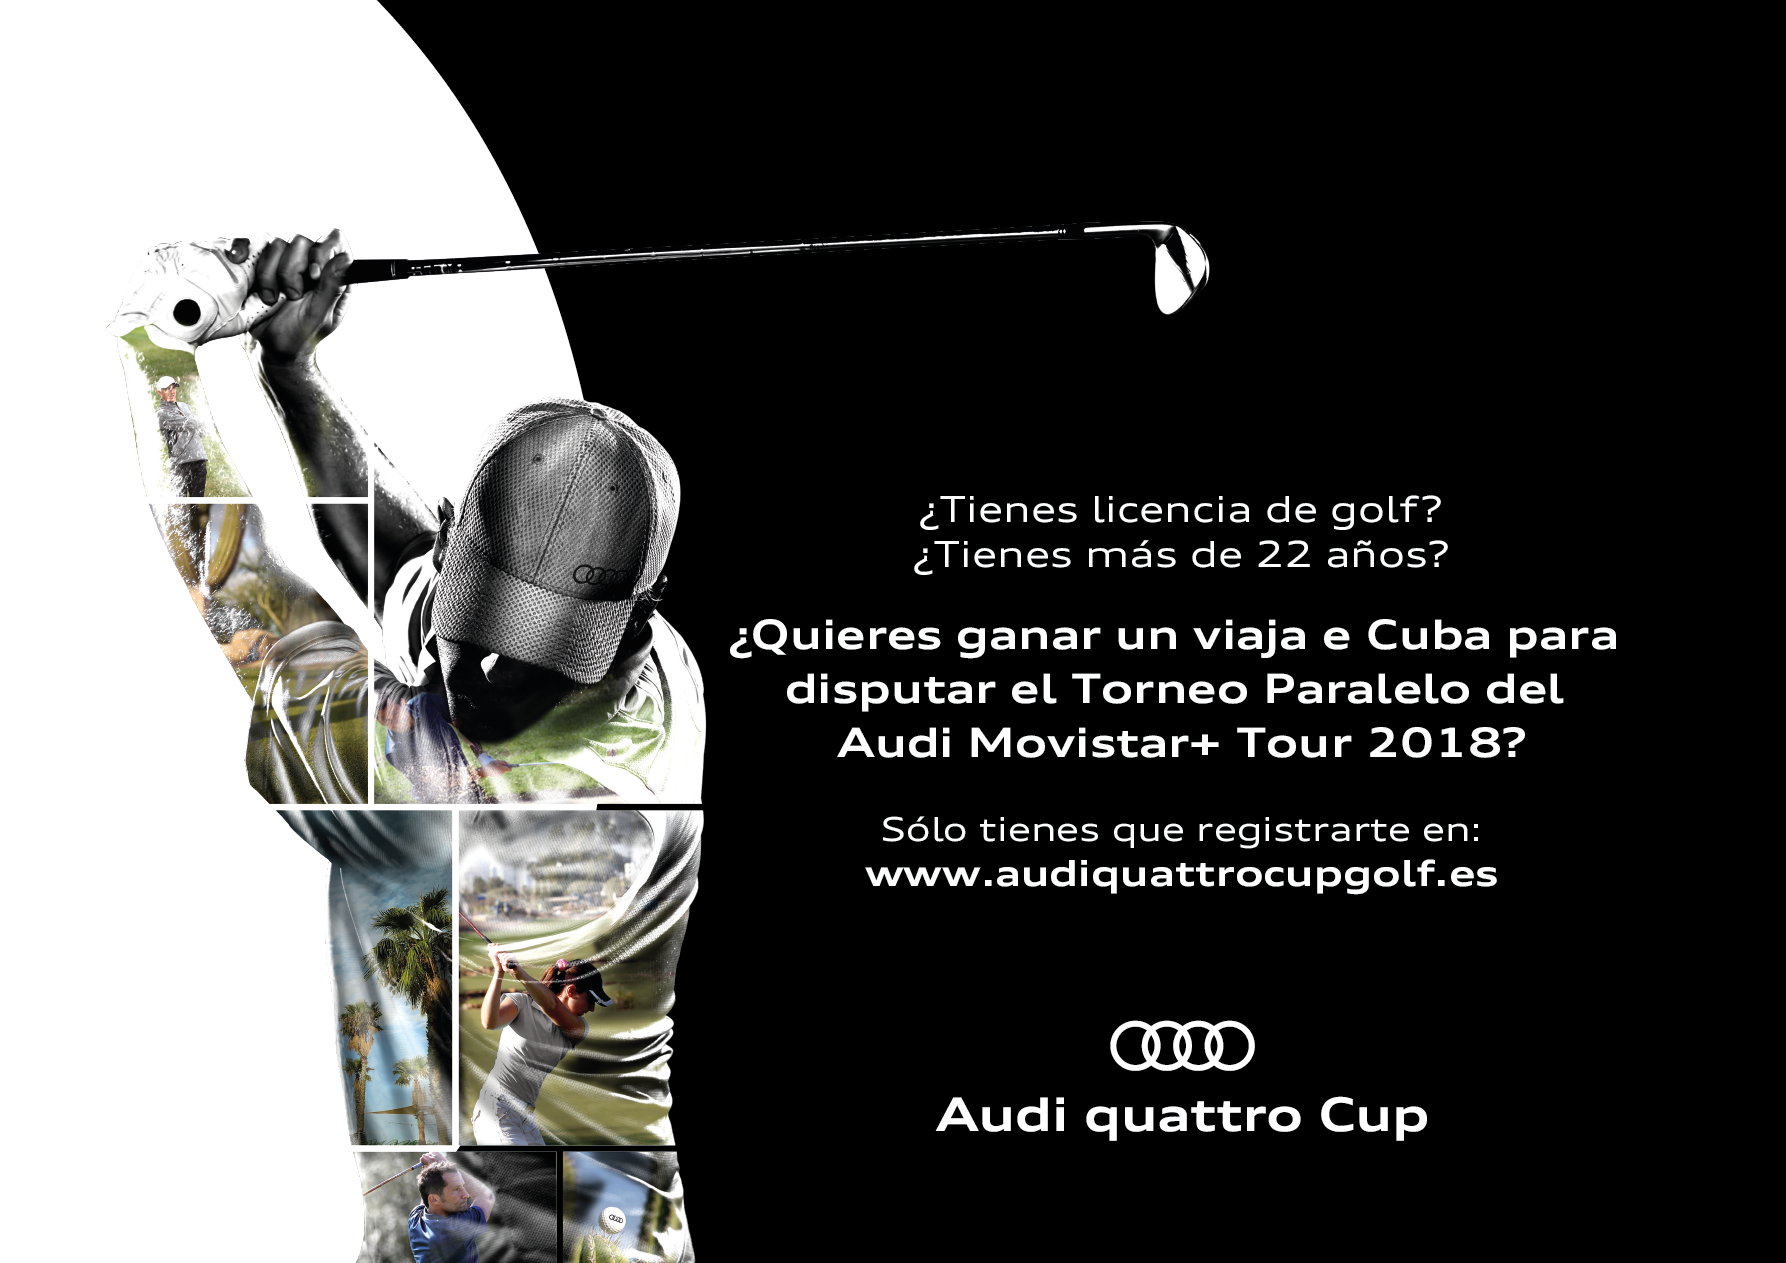 SORTEO PLAZA AUDI MOVISTAR+ TOUR